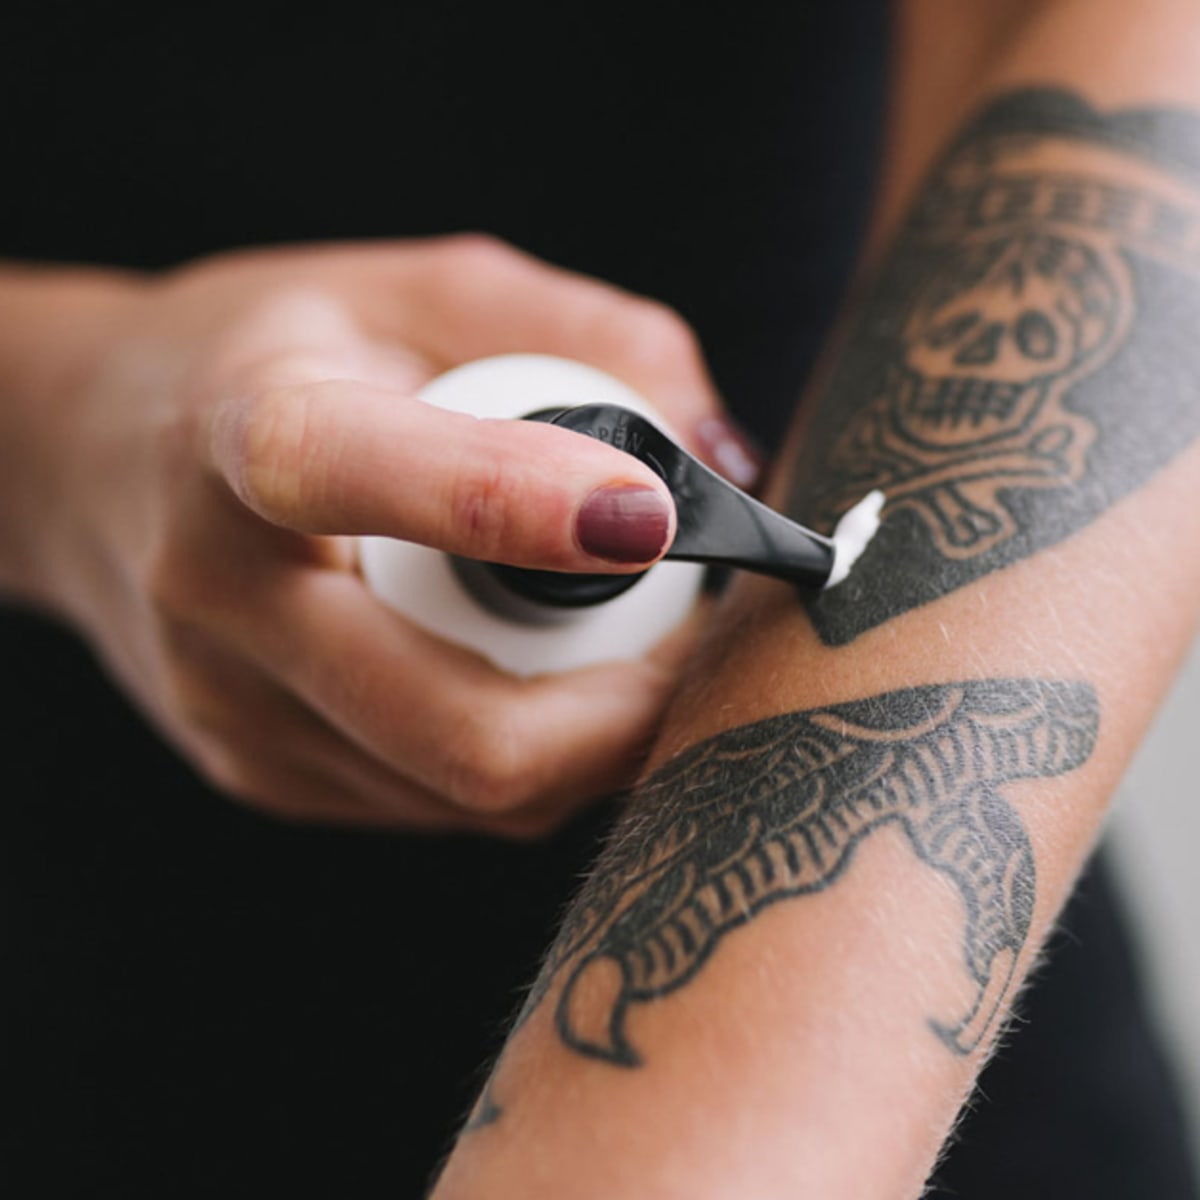 Do Tattoo Removal Creams Actually Work Tattoo Ideas Artists And Models How to get rid of tattoo? do tattoo removal creams actually work